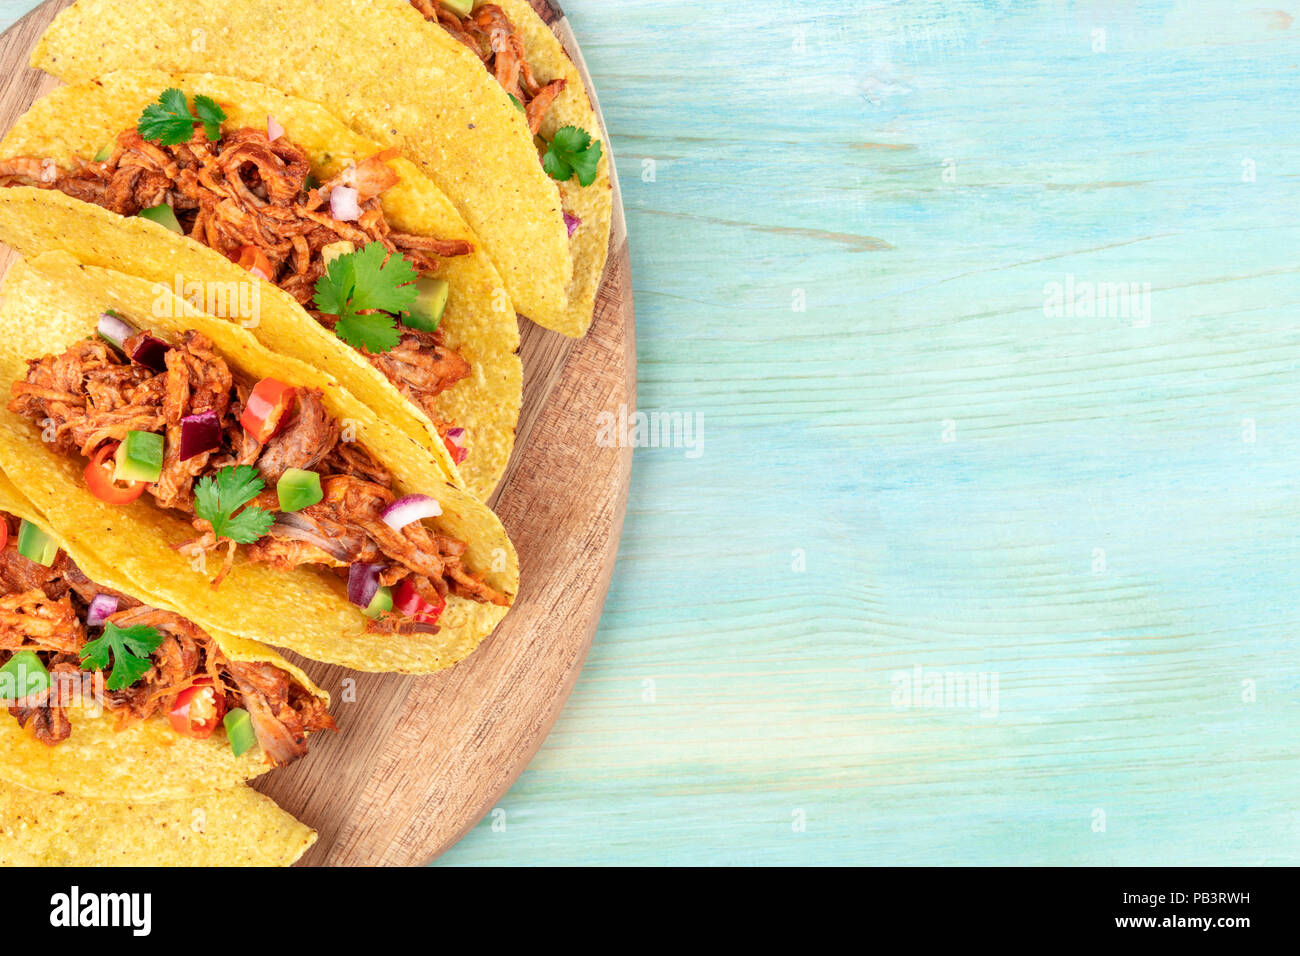 Overhead closeup photo of Mexican tacos with pulled pork, avocado, chili peppers, cilantro, with place for text - Stock Image